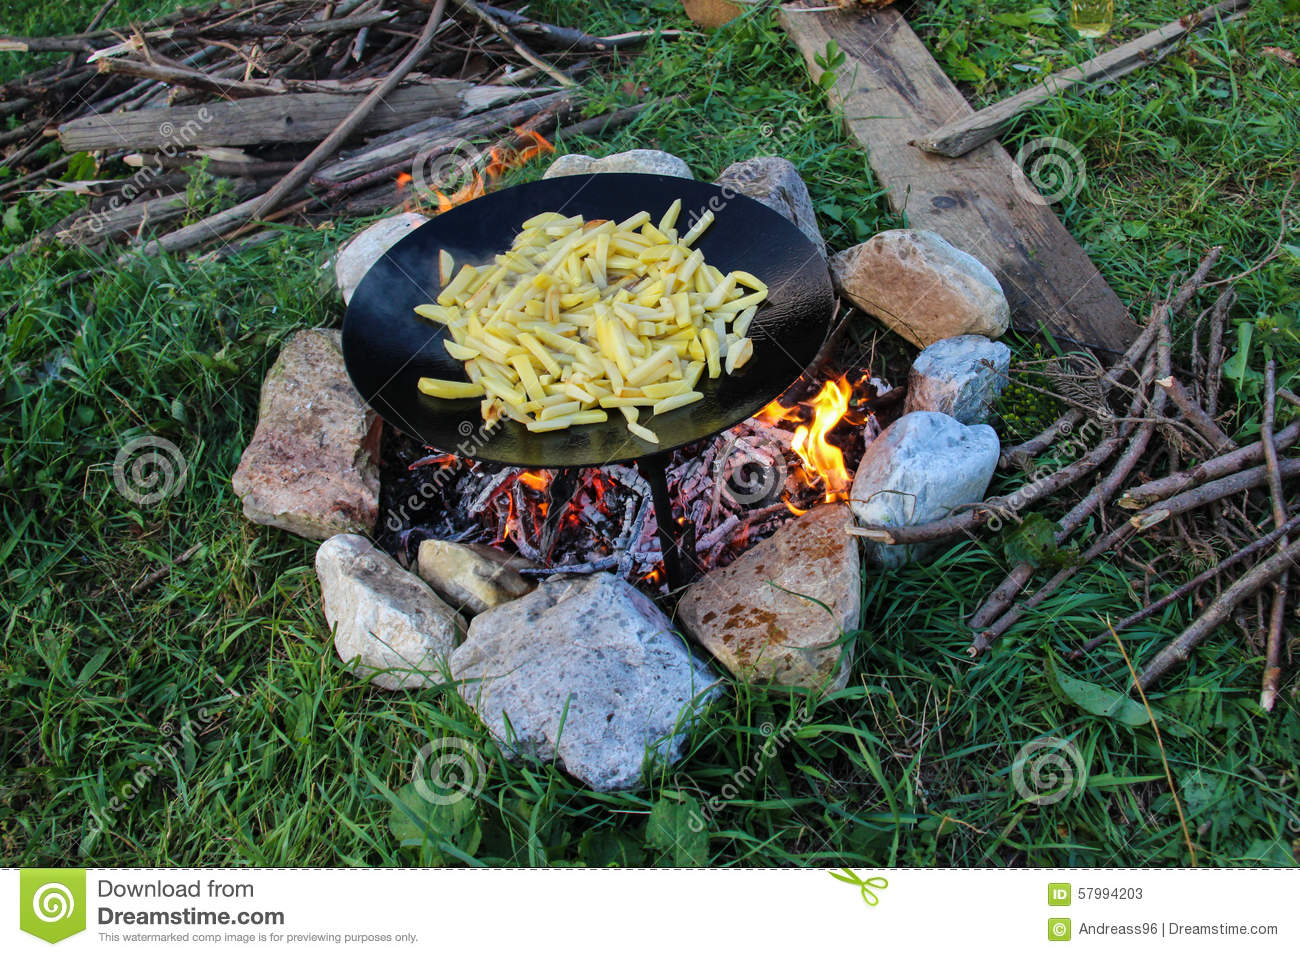 Related Keywords Suggestions For Outdoorcooking